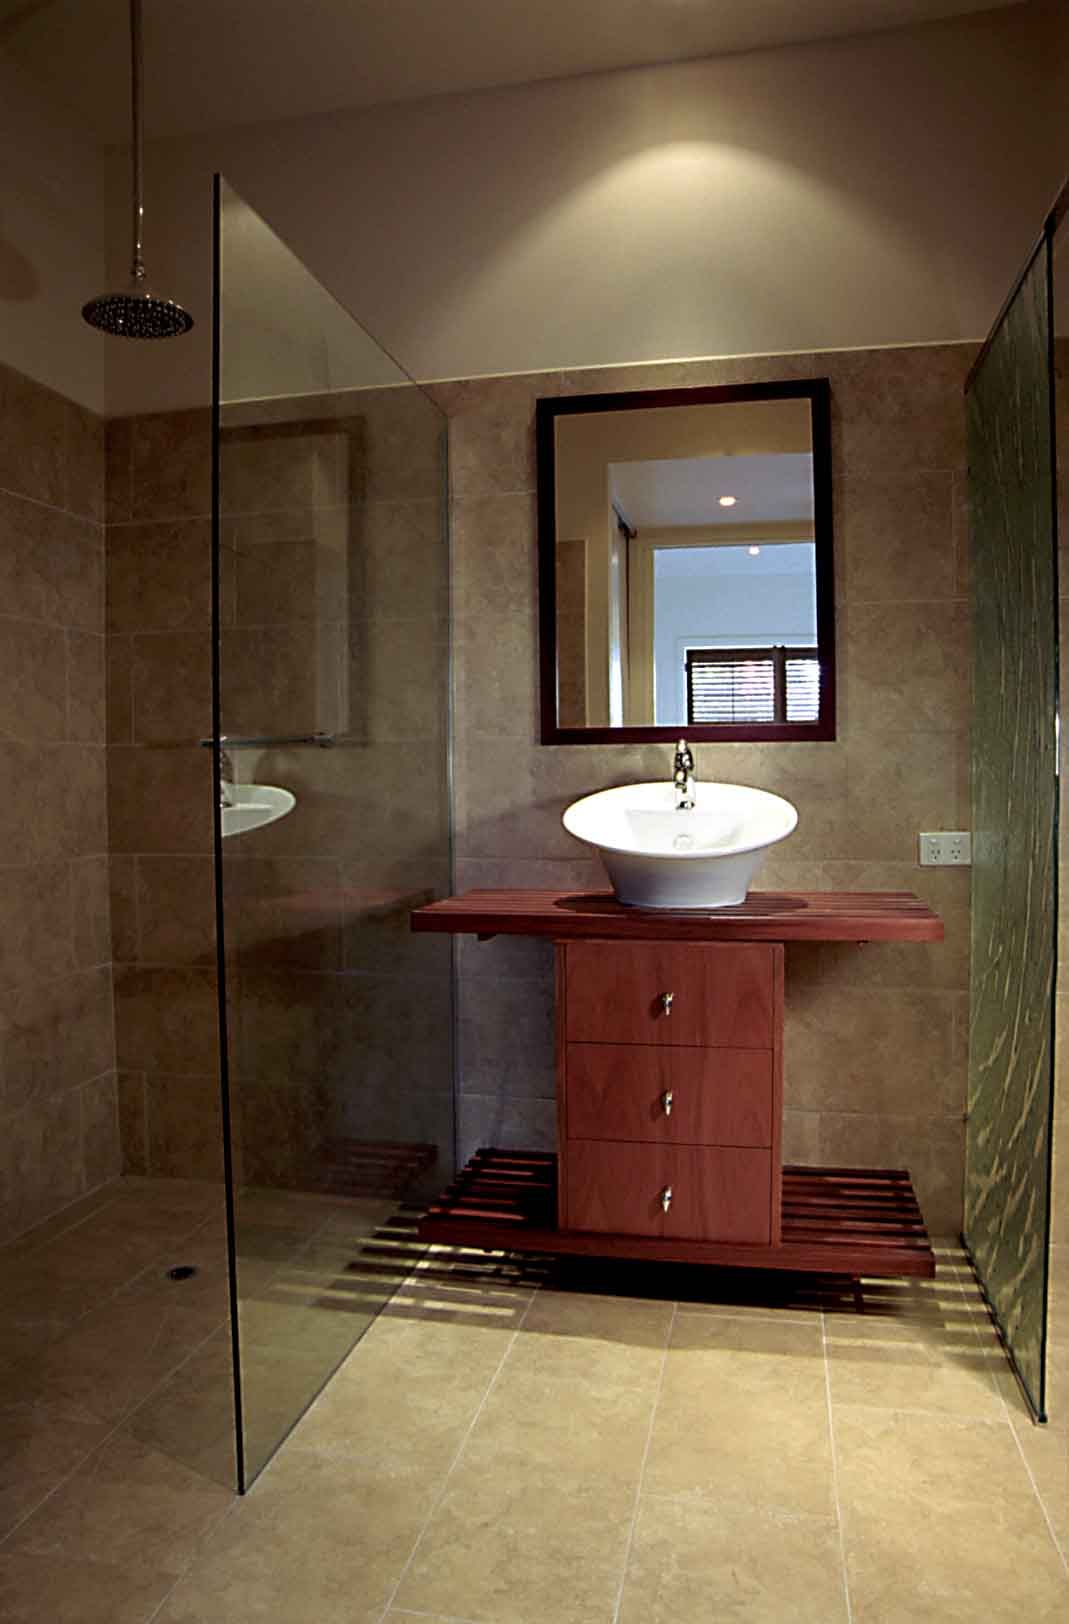 Wet room design for small bathrooms small ensuite for Small restroom design